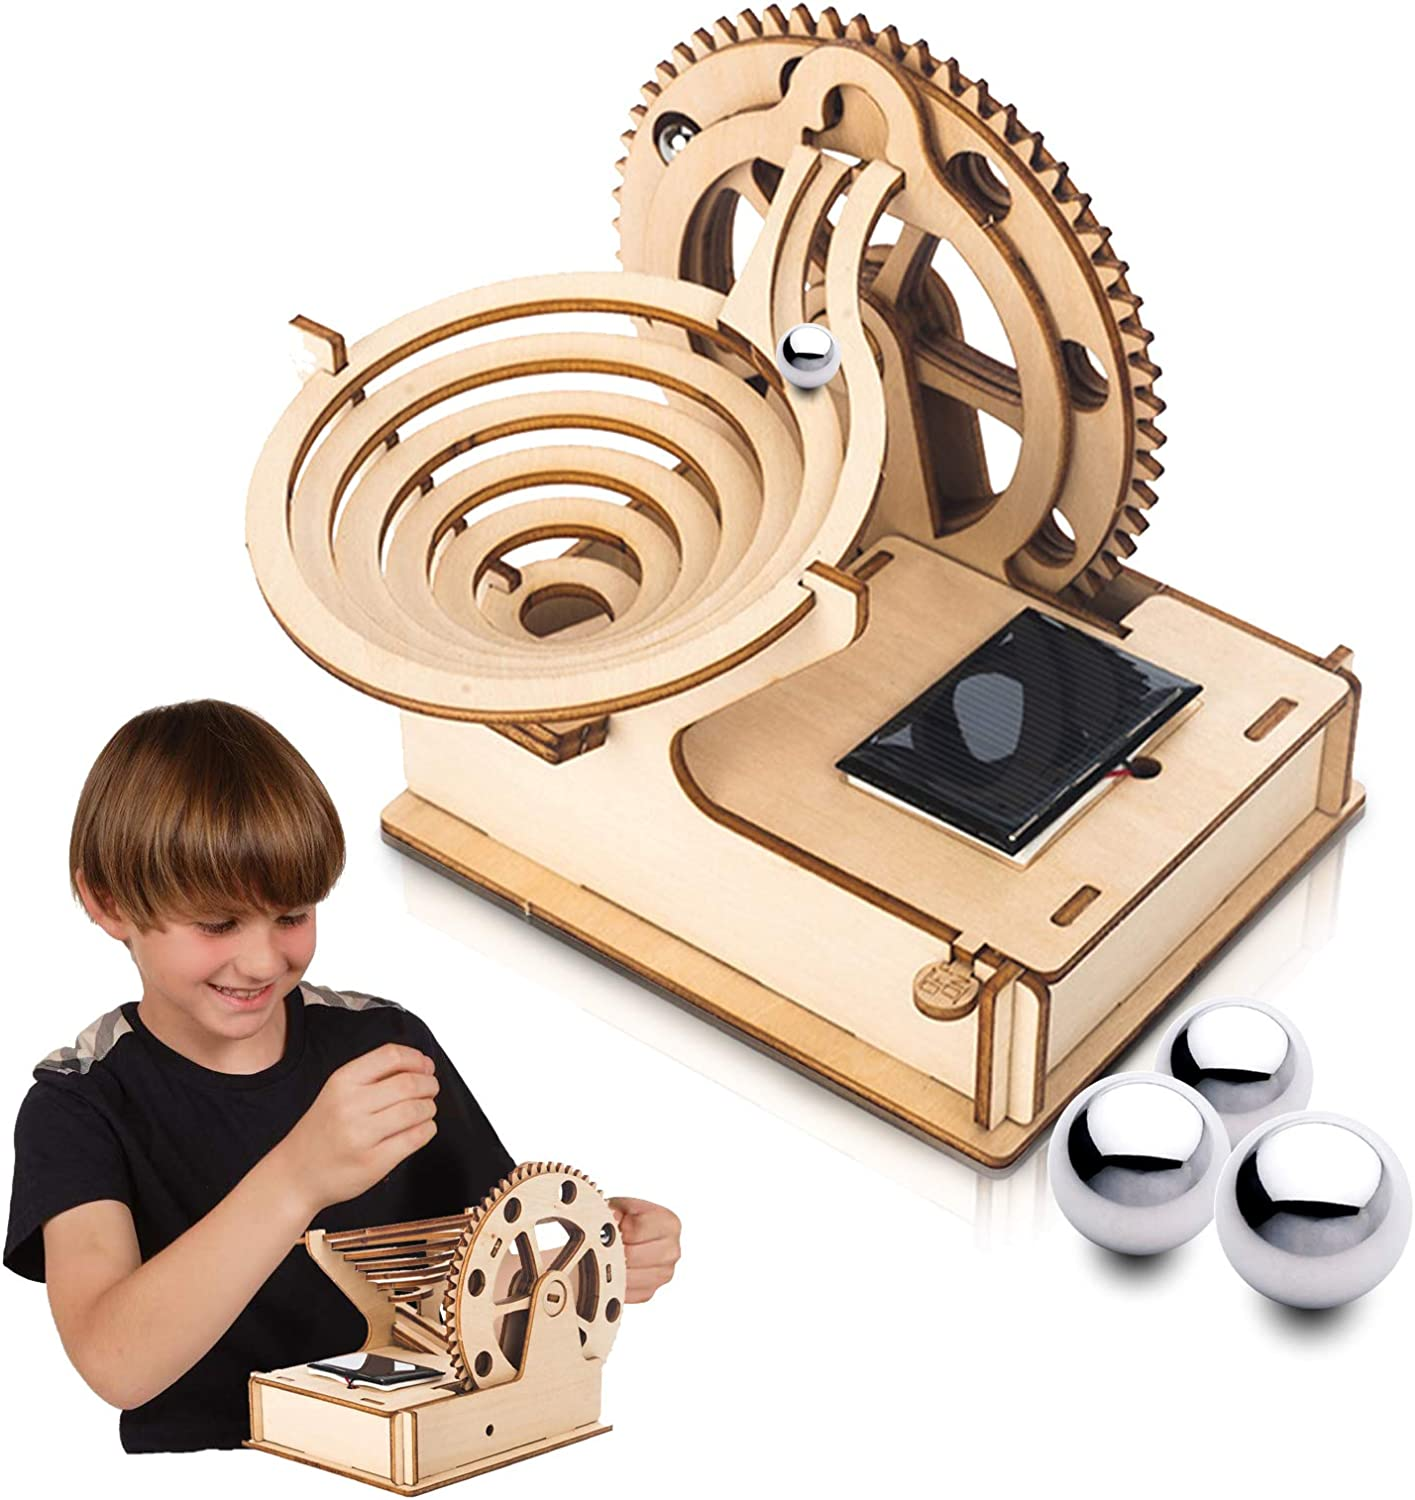 Marble Run 3D Wooden Puzzle for Teens and Adults,DIY Model Kit,Educational Jigsaw Puzzles Building Toys Birthday Gift for Women//Kids Ages 8-10-12-14 STEM Projects Science Experiments Runs on Solar